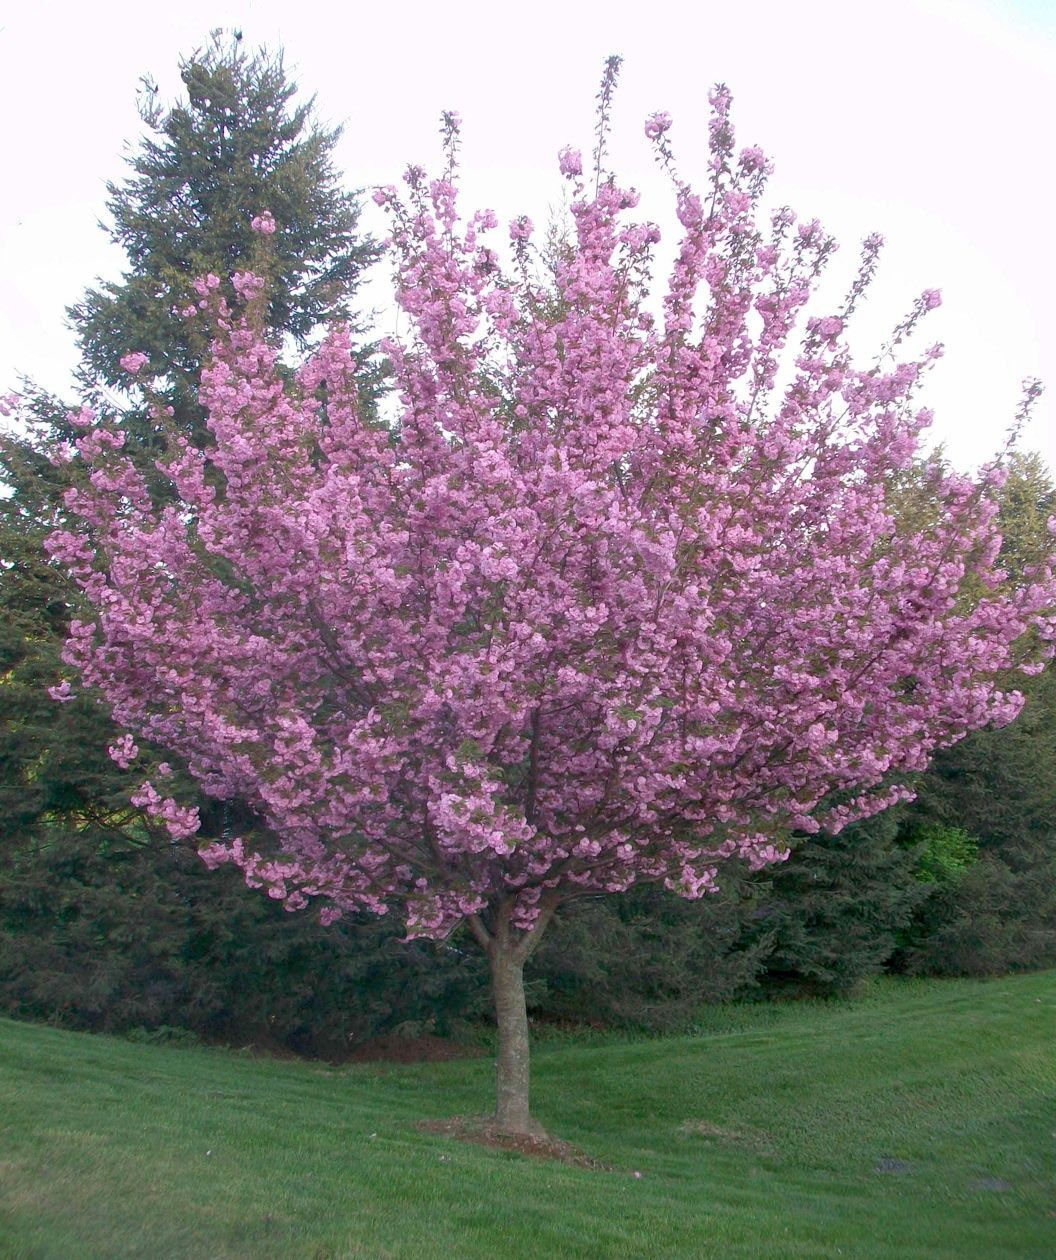 Buy kwanzan cherry trees online pinterest cherry tree gardens the kwanzan cherry tree is a poplar flowering ornamental tree with bright pink blooms and upright form buy online at garden goods direct mightylinksfo